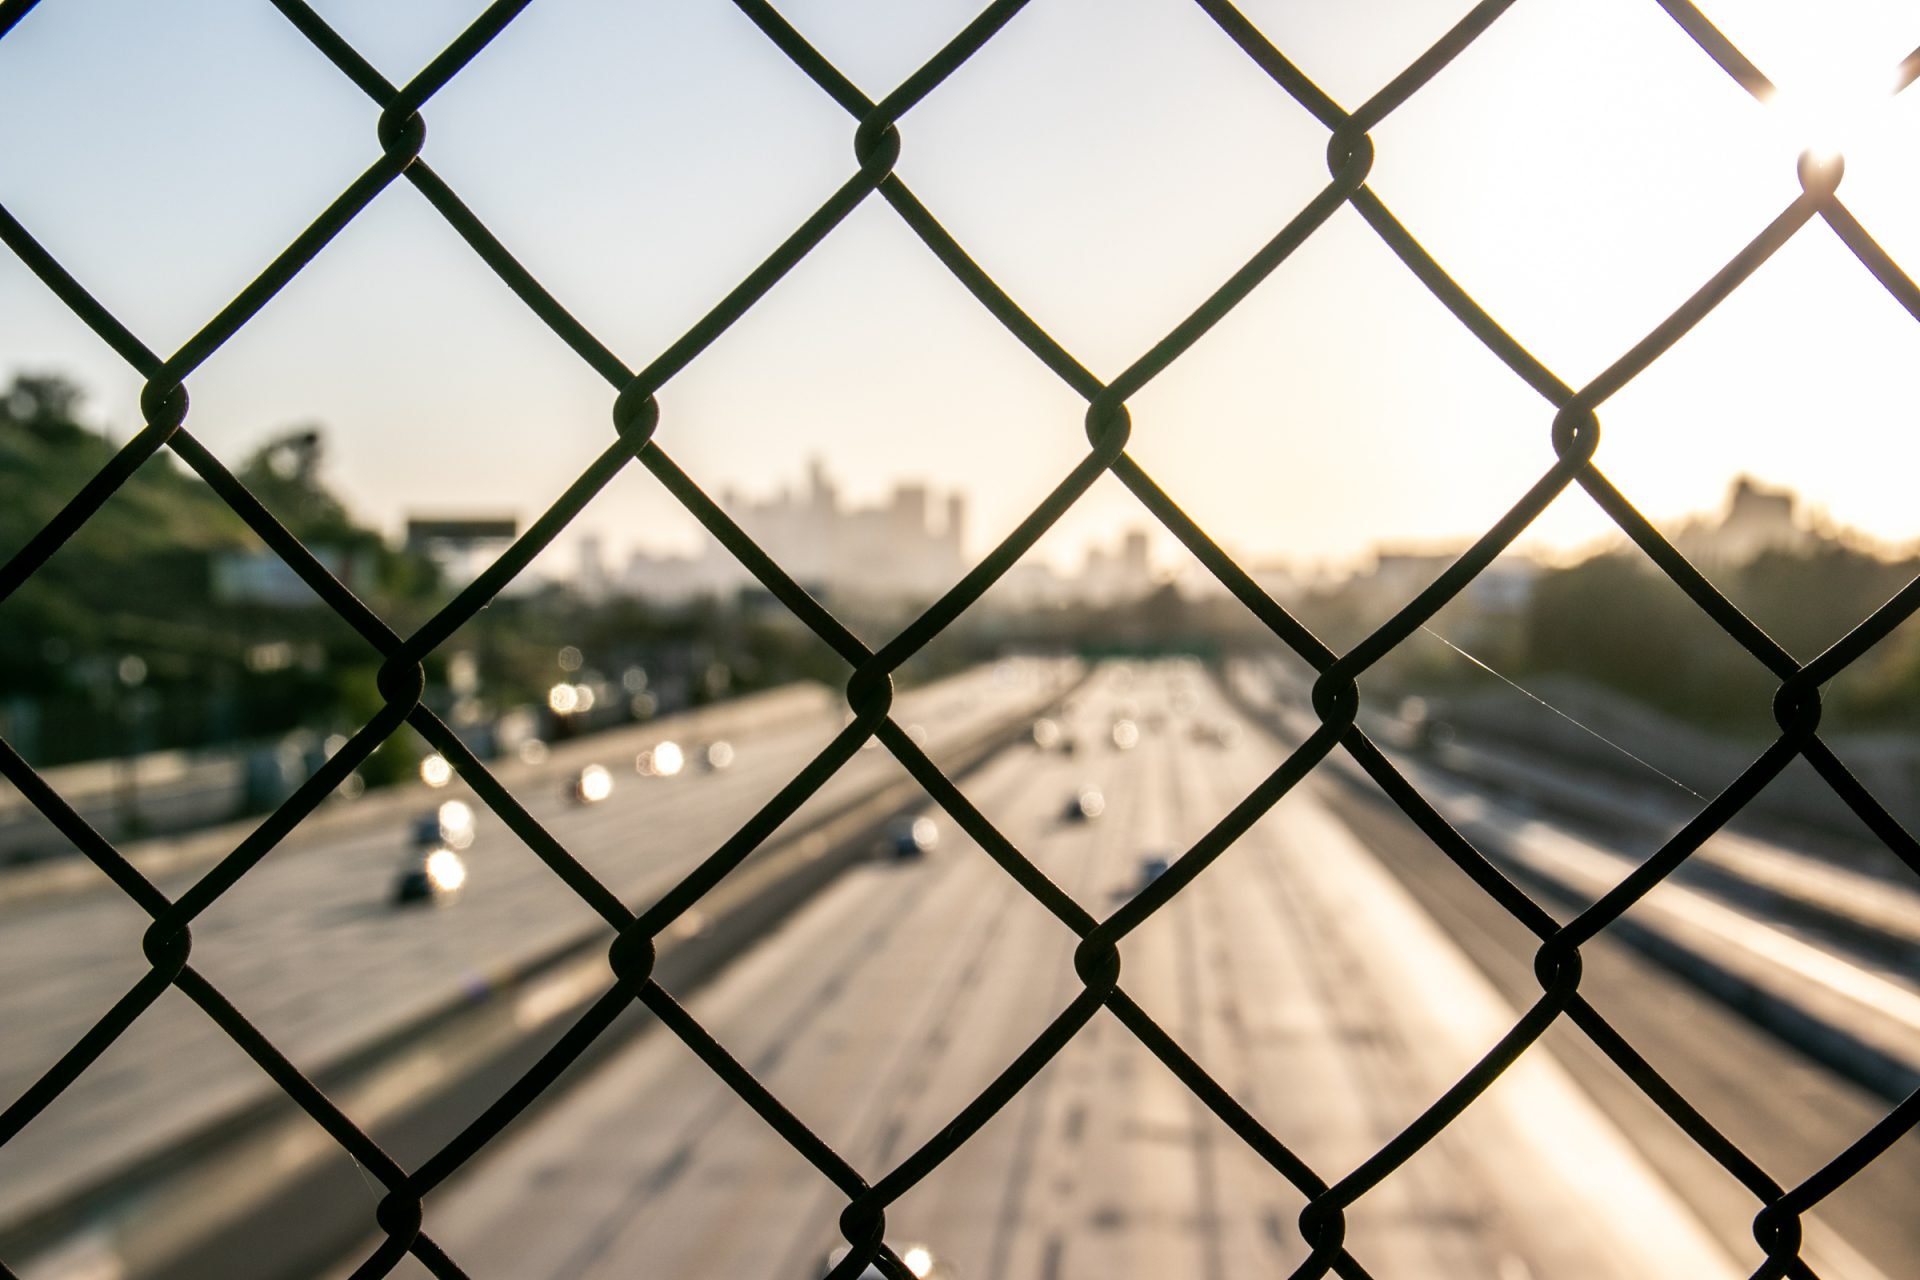 Blurry Traffic Through Chain Link Fence